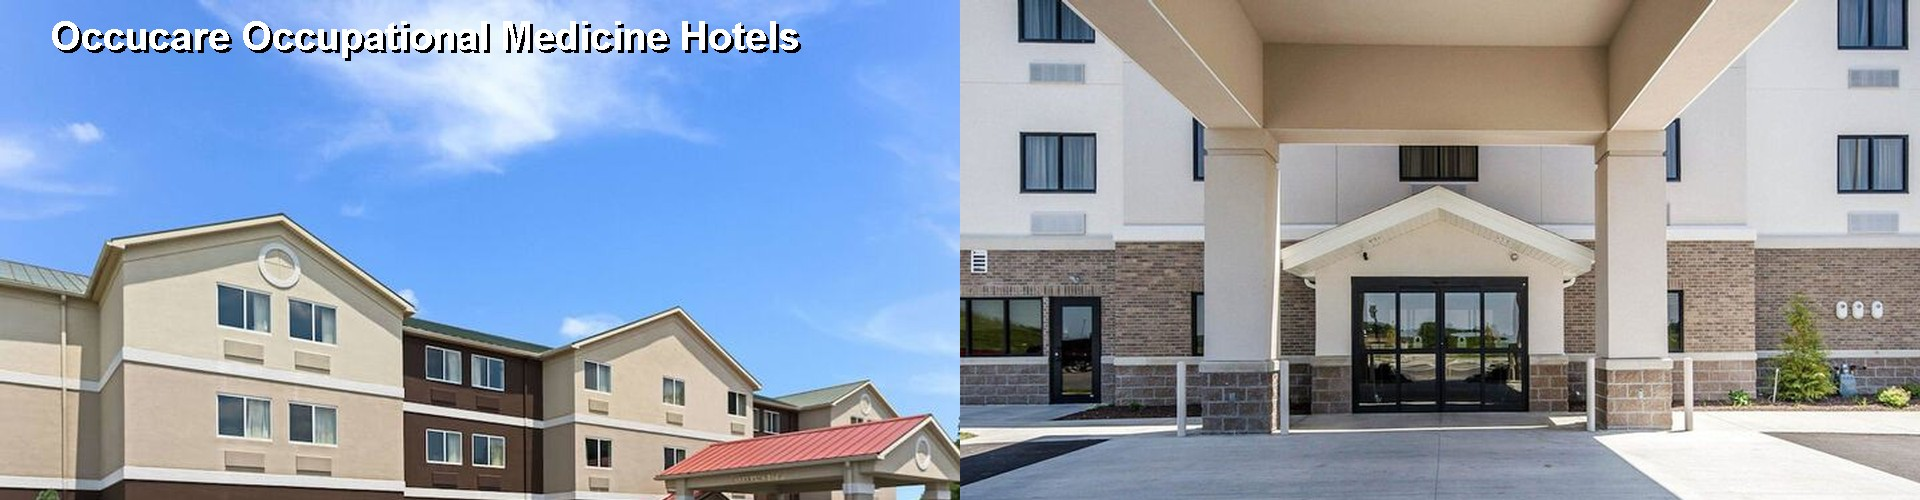 5 Best Hotels near Occucare Occupational Medicine